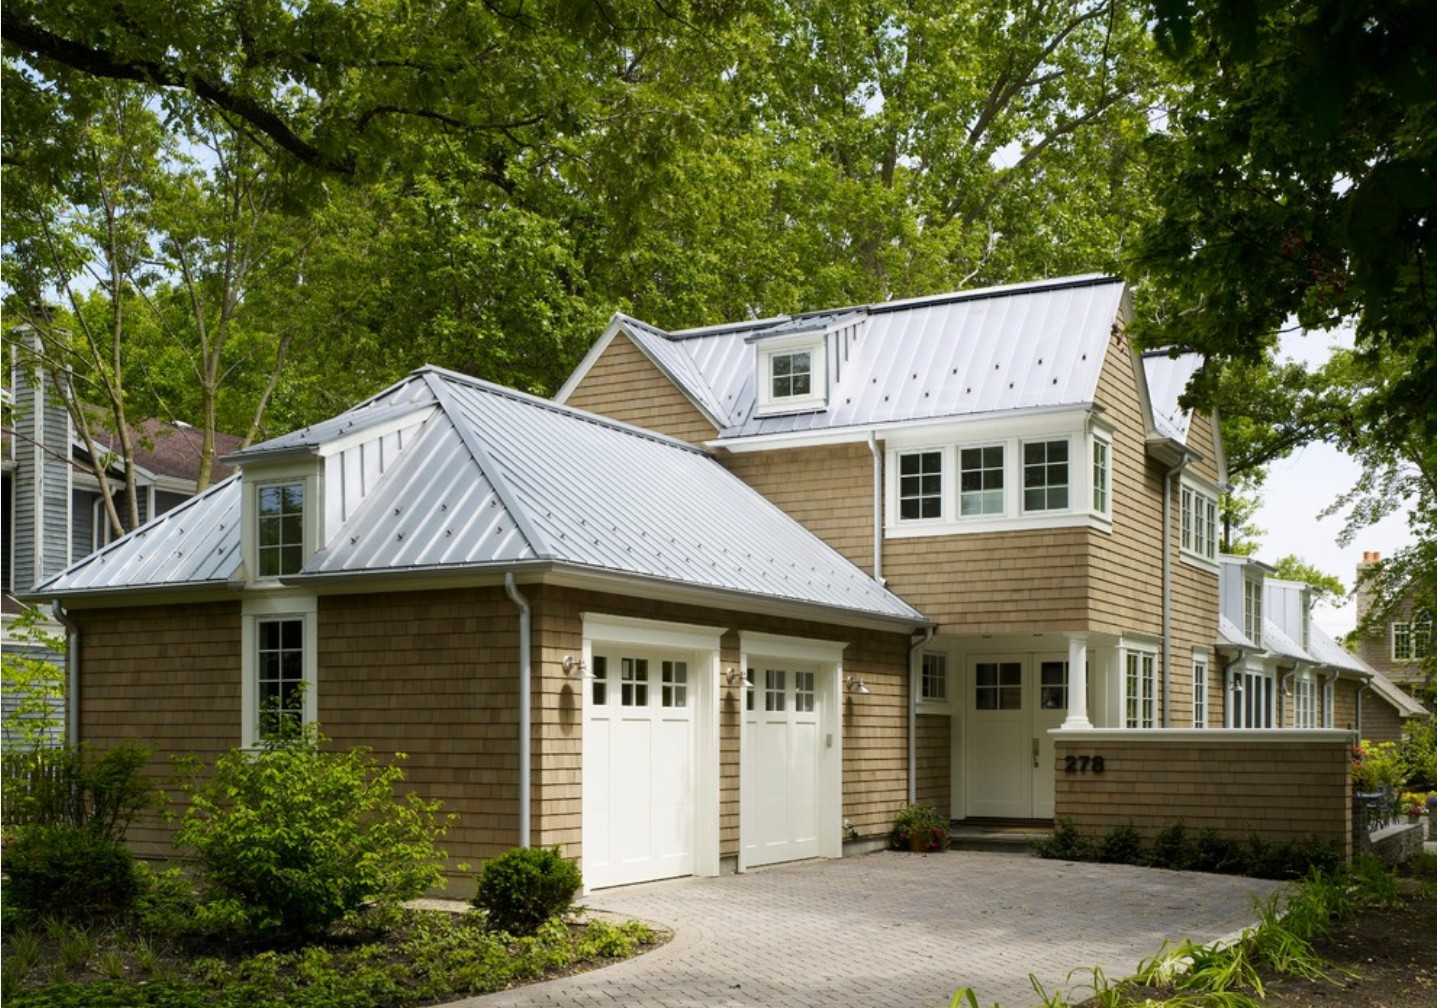 Metal Shingles Vs Standing Seam Metal Roof Costs Metal Roofing Prices Options